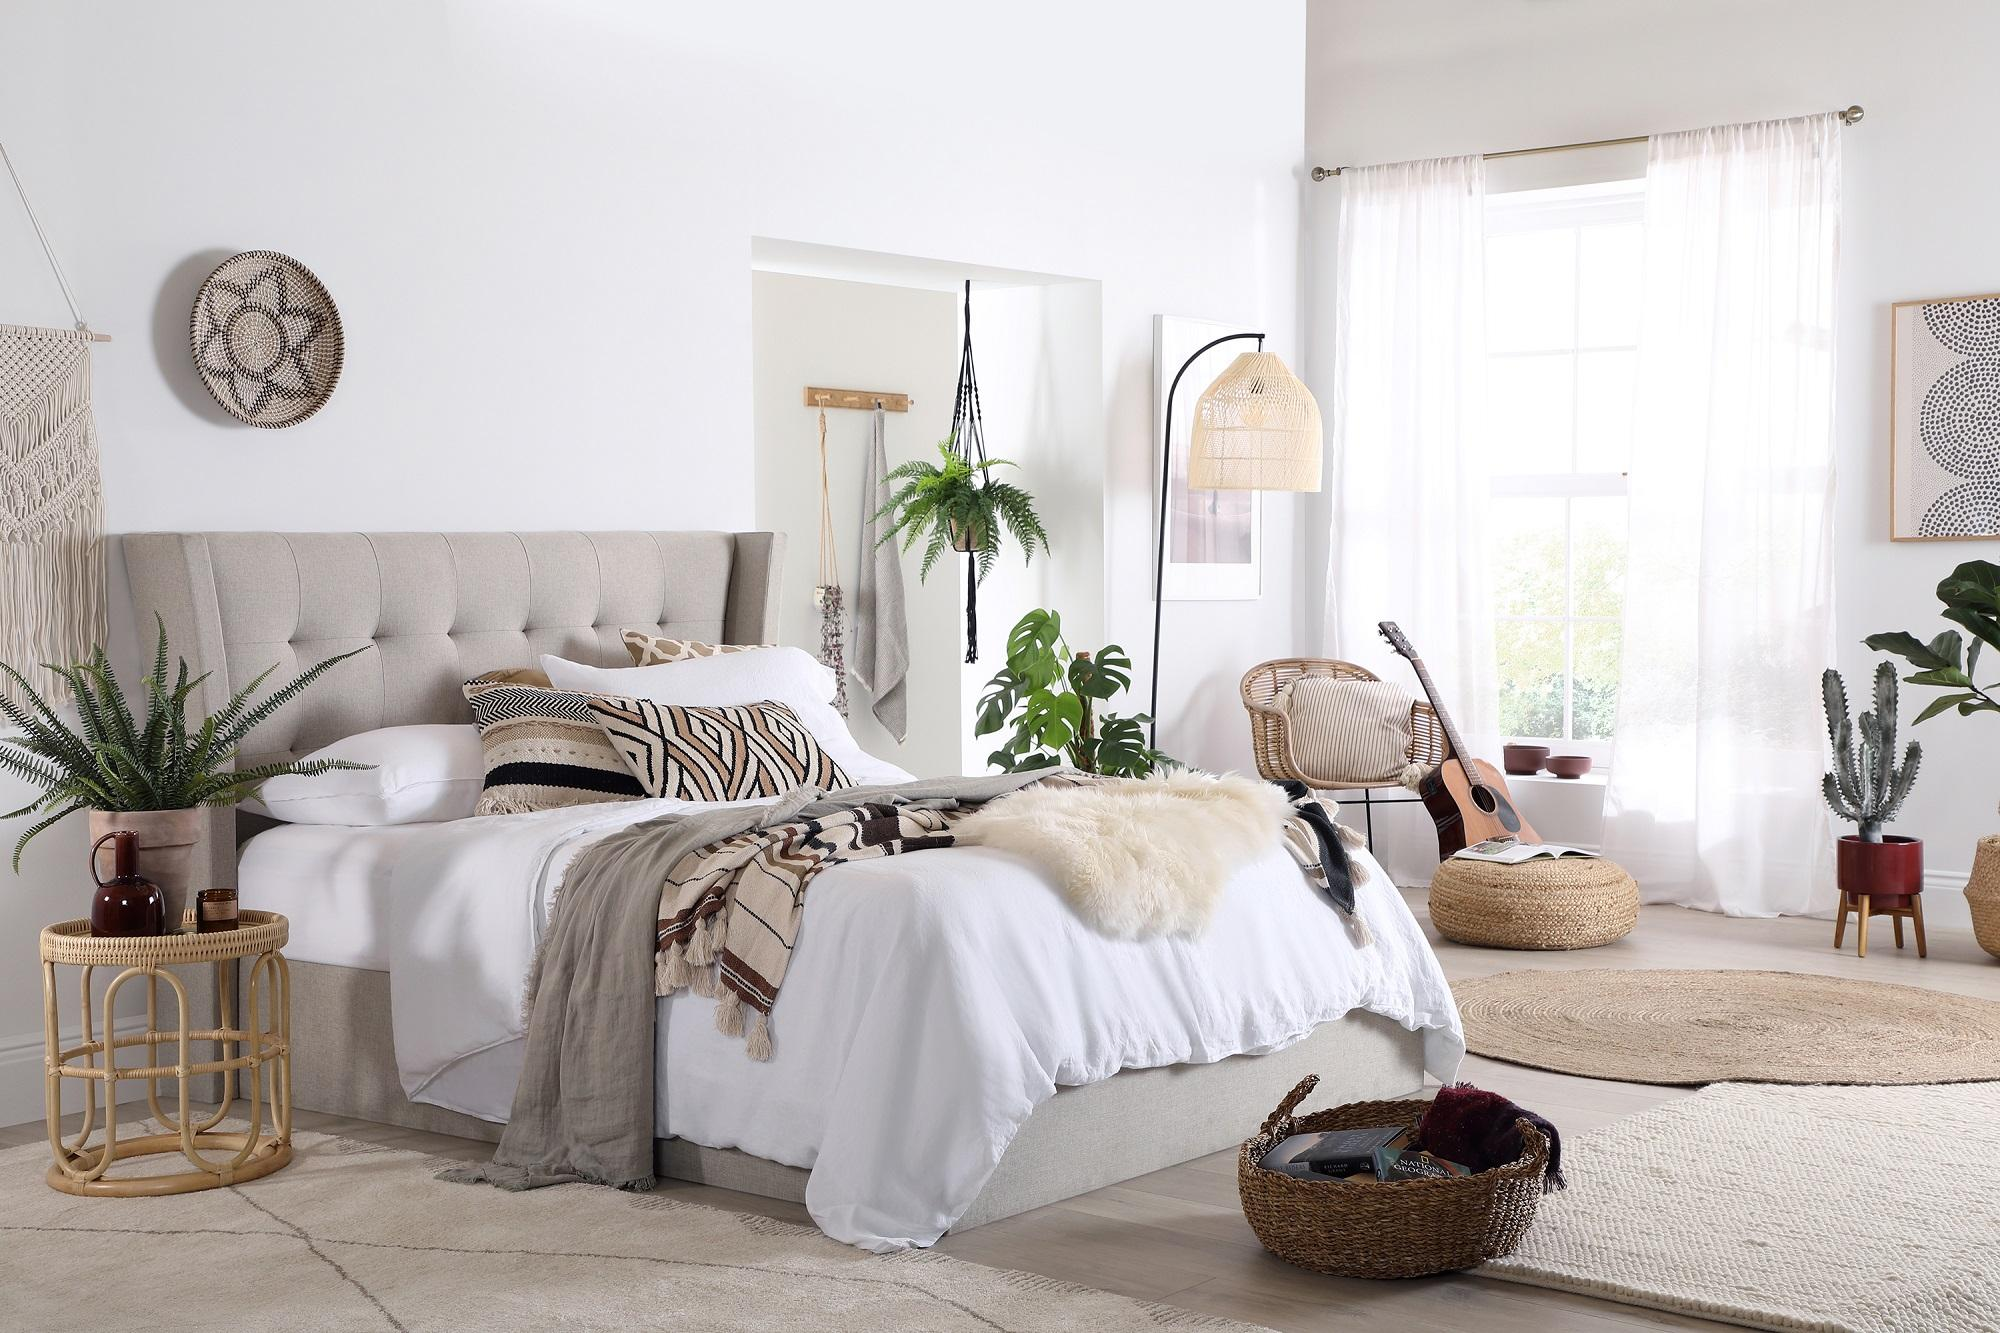 Oatmeal fabric ottoman storage bed layered with soft materials in a neutral, wellness inspired bedroom.